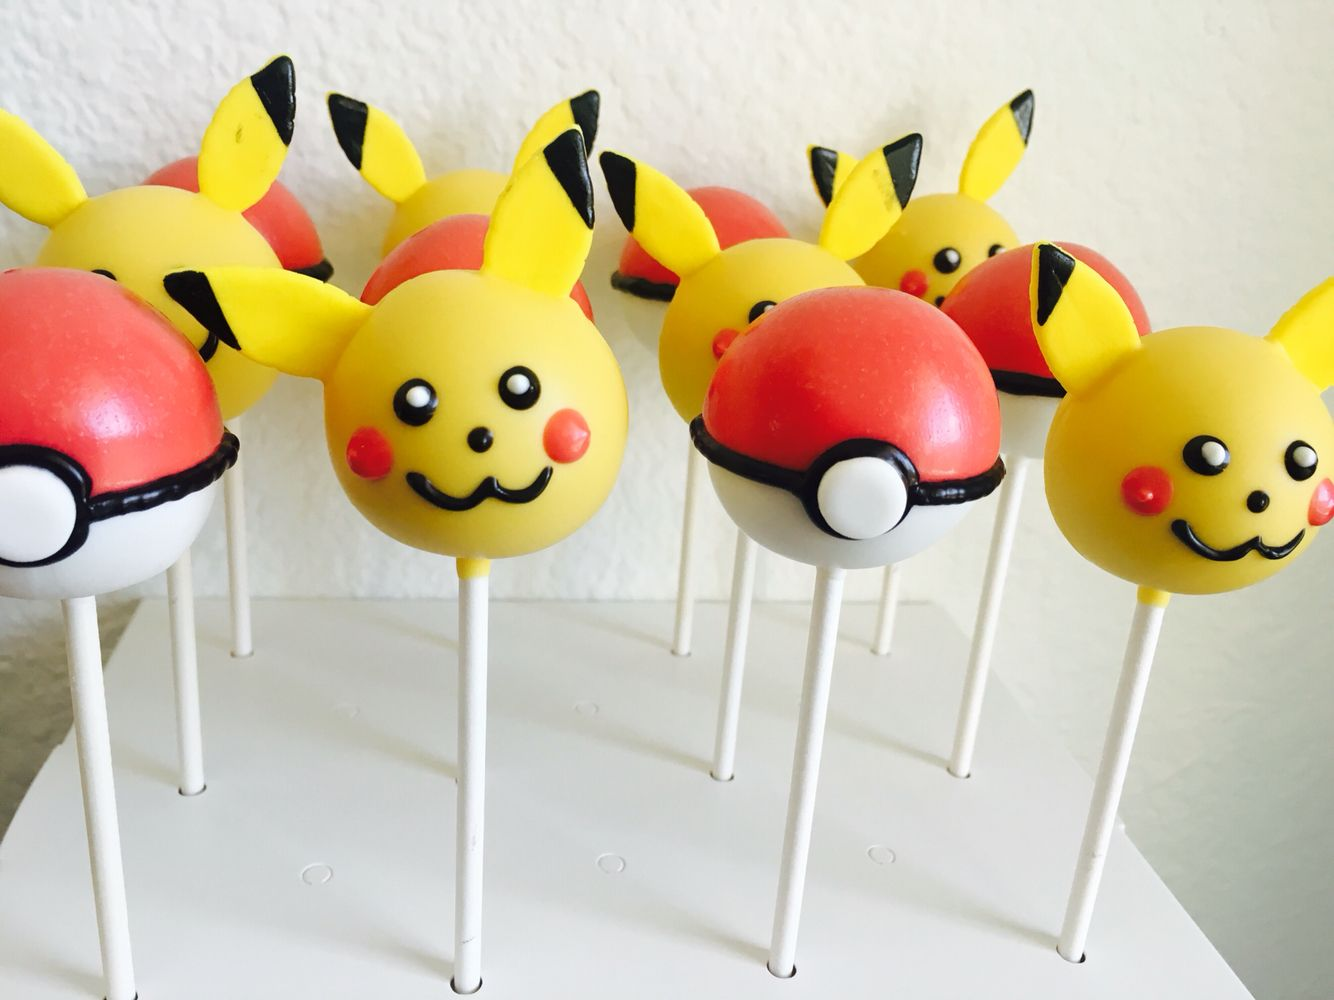 How To Make Balloon Cake Pops